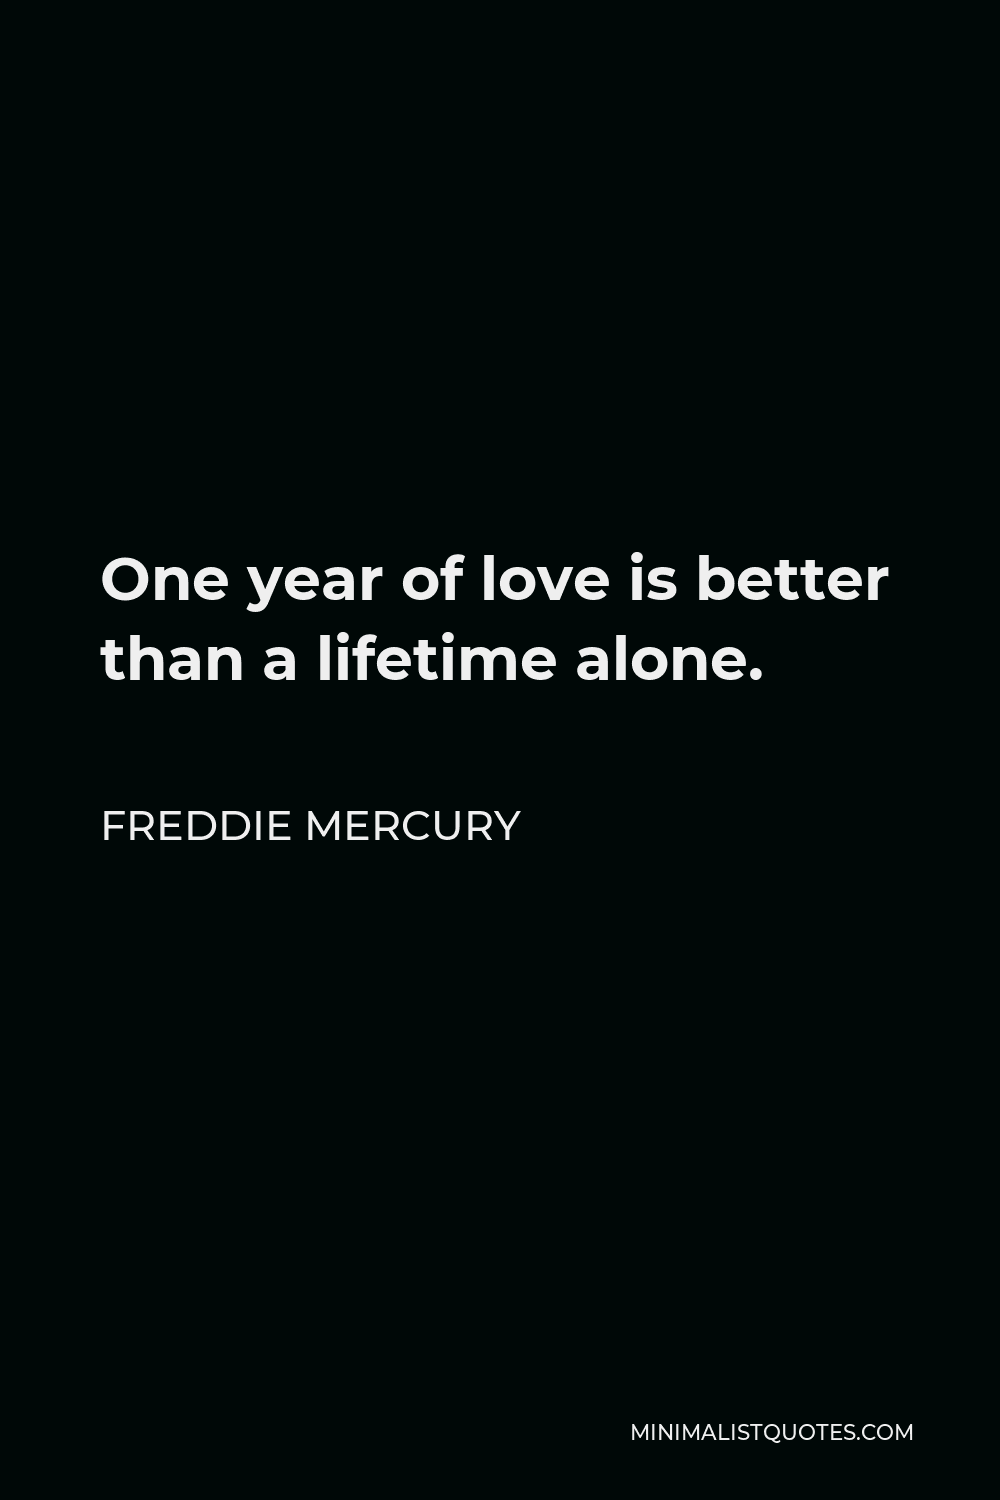 Freddie Mercury Quote - One year of love is better than a lifetime alone.